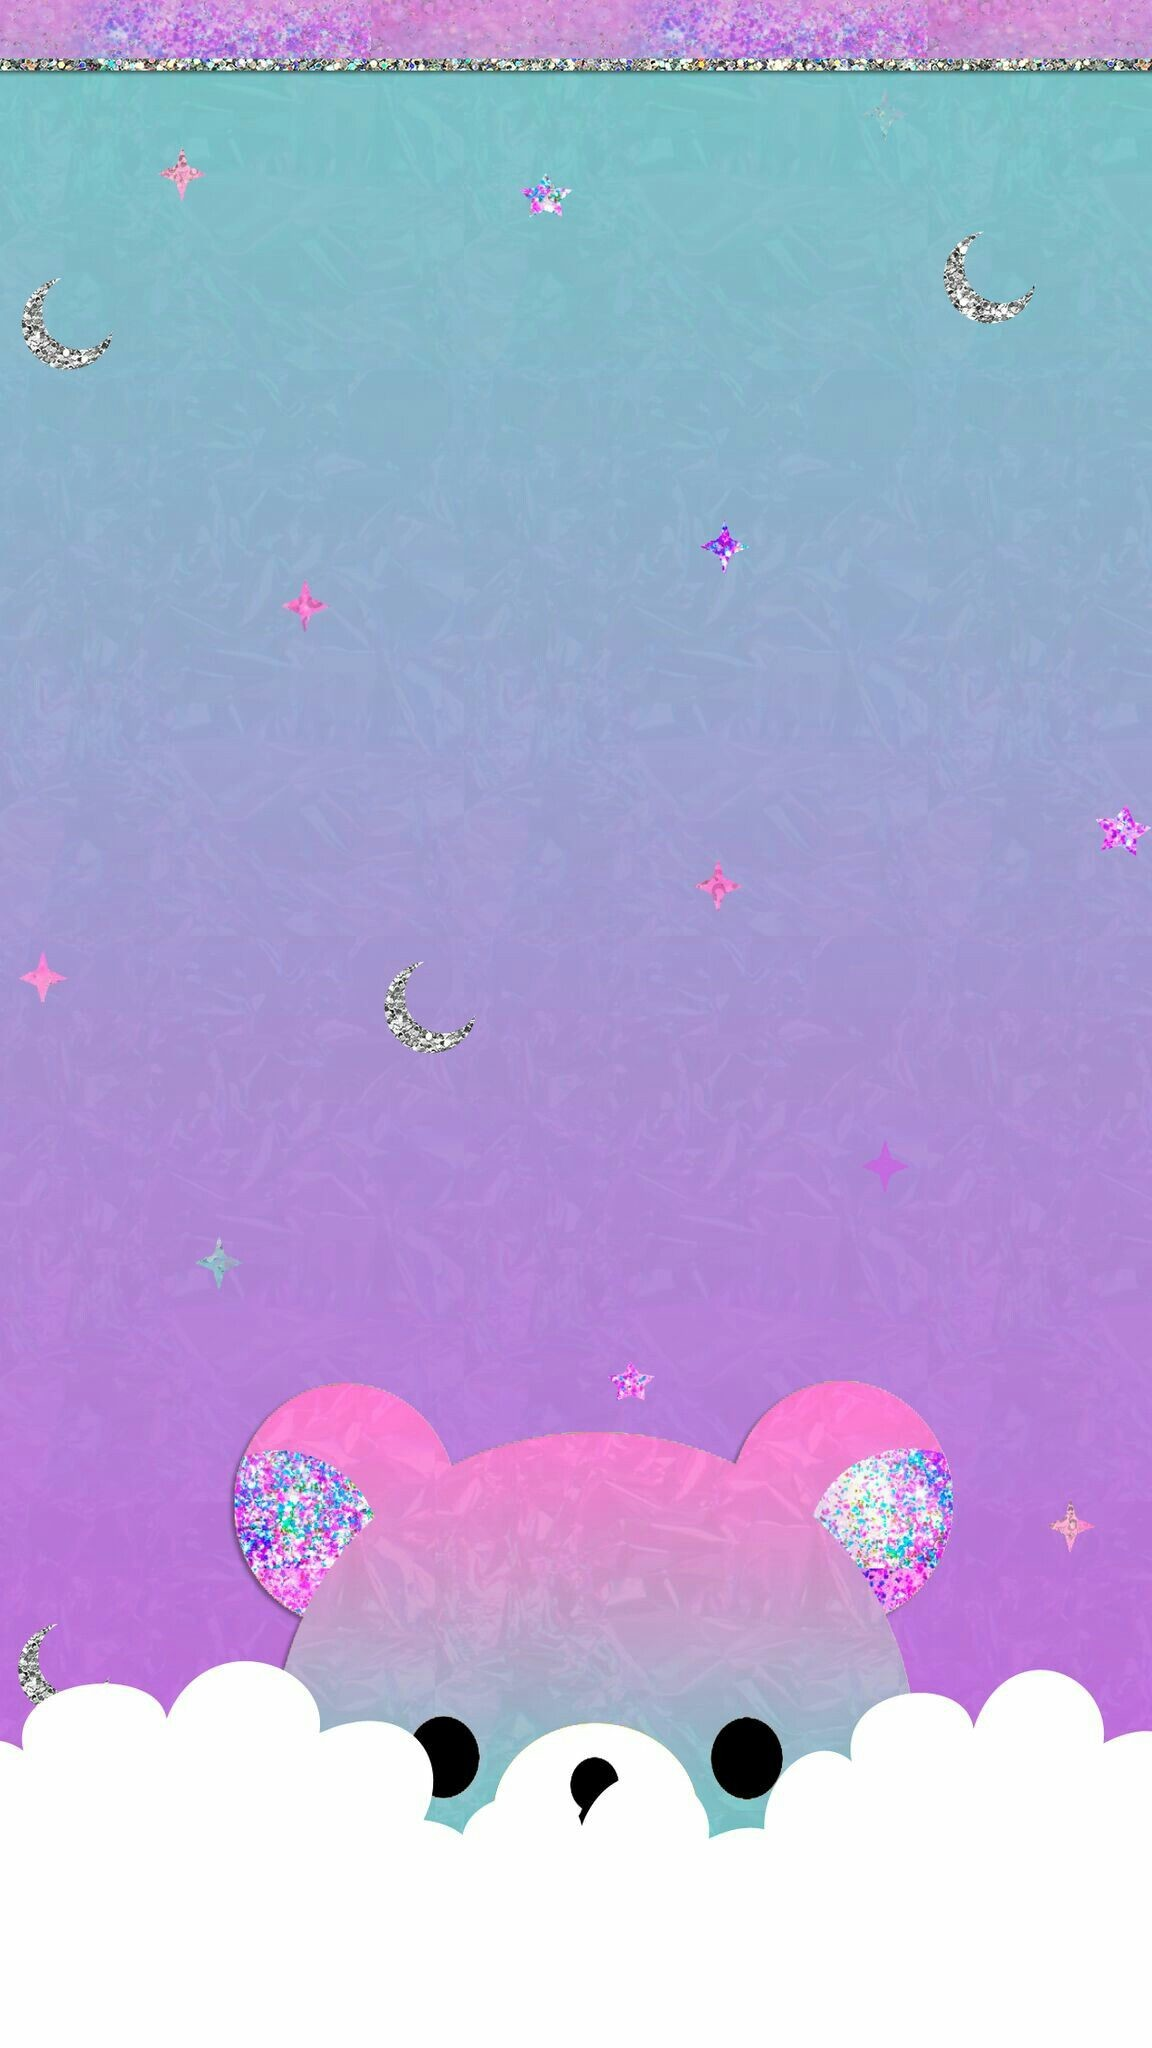 Res: 1152x2048, Wallpaper Backgrounds, Iphone Wallpapers, Iphone 2, Rilakkuma, Chibi, Hello  Kitty, Android, Kawaii, Jitter Glitter